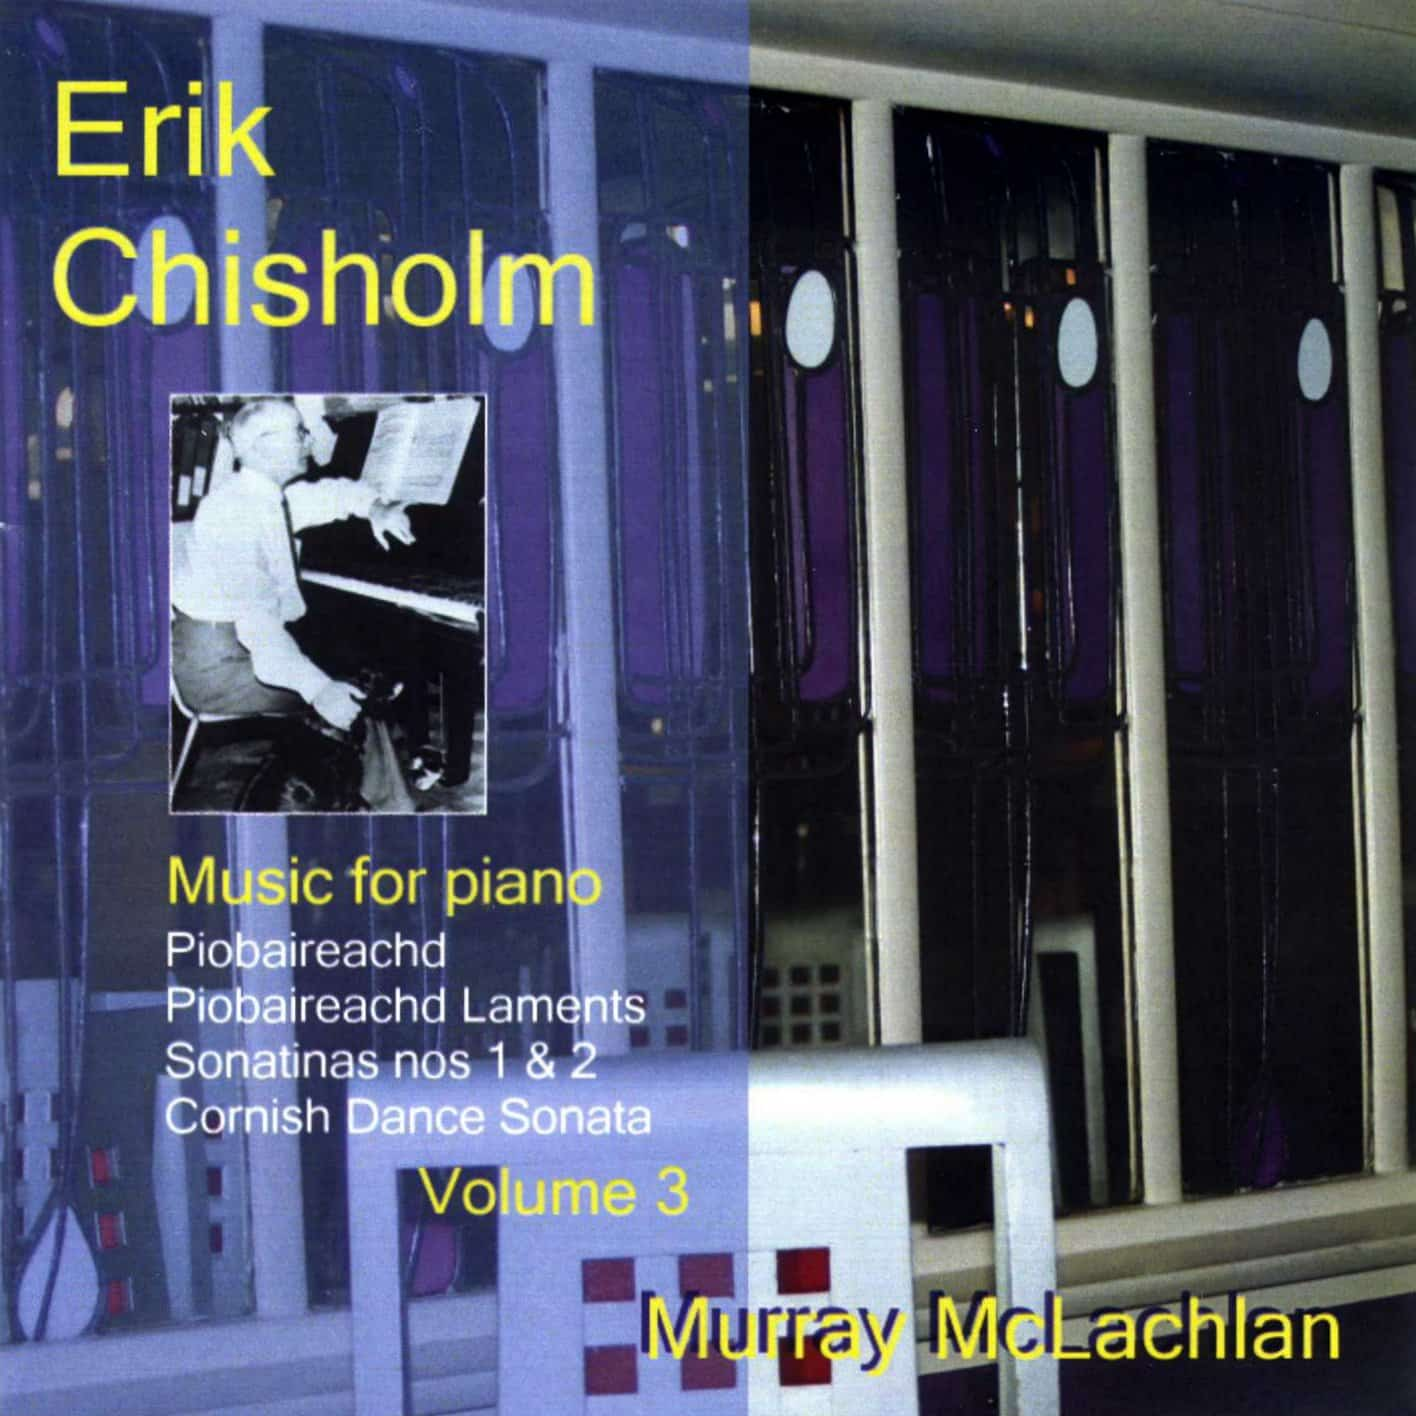 Erik Chisholm - Music for Piano, volume 3